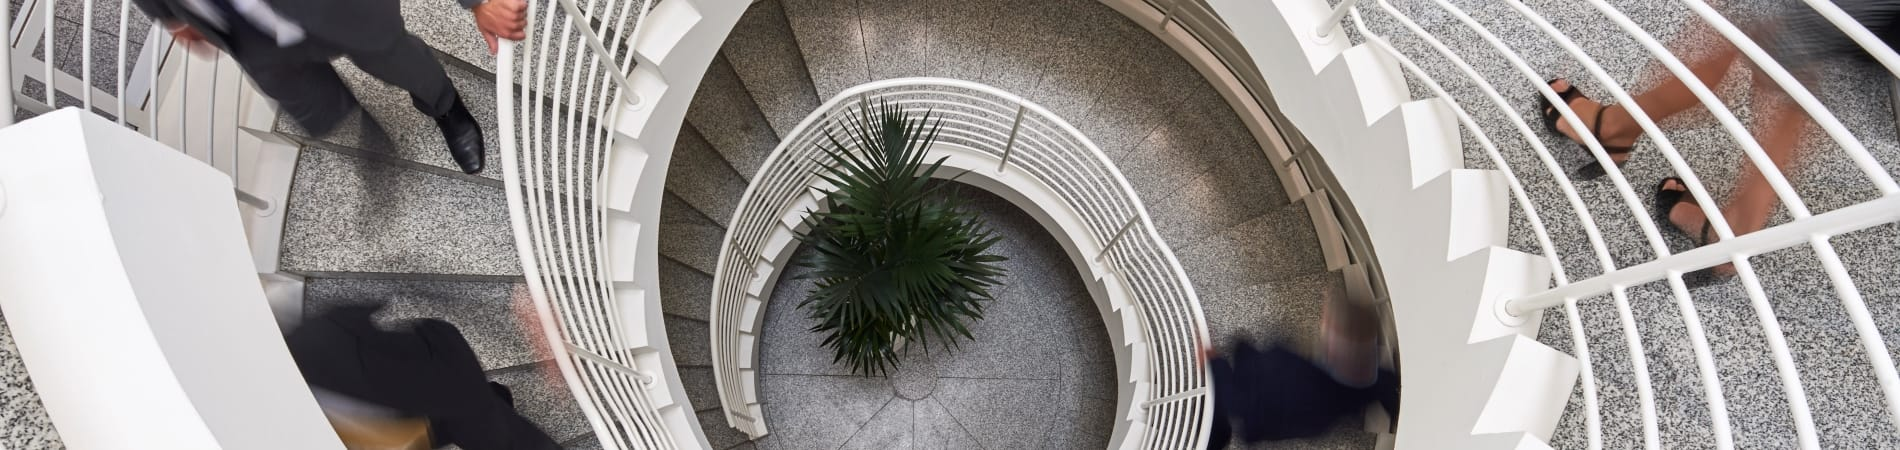 Picture of spiral stair case at Moller Institute